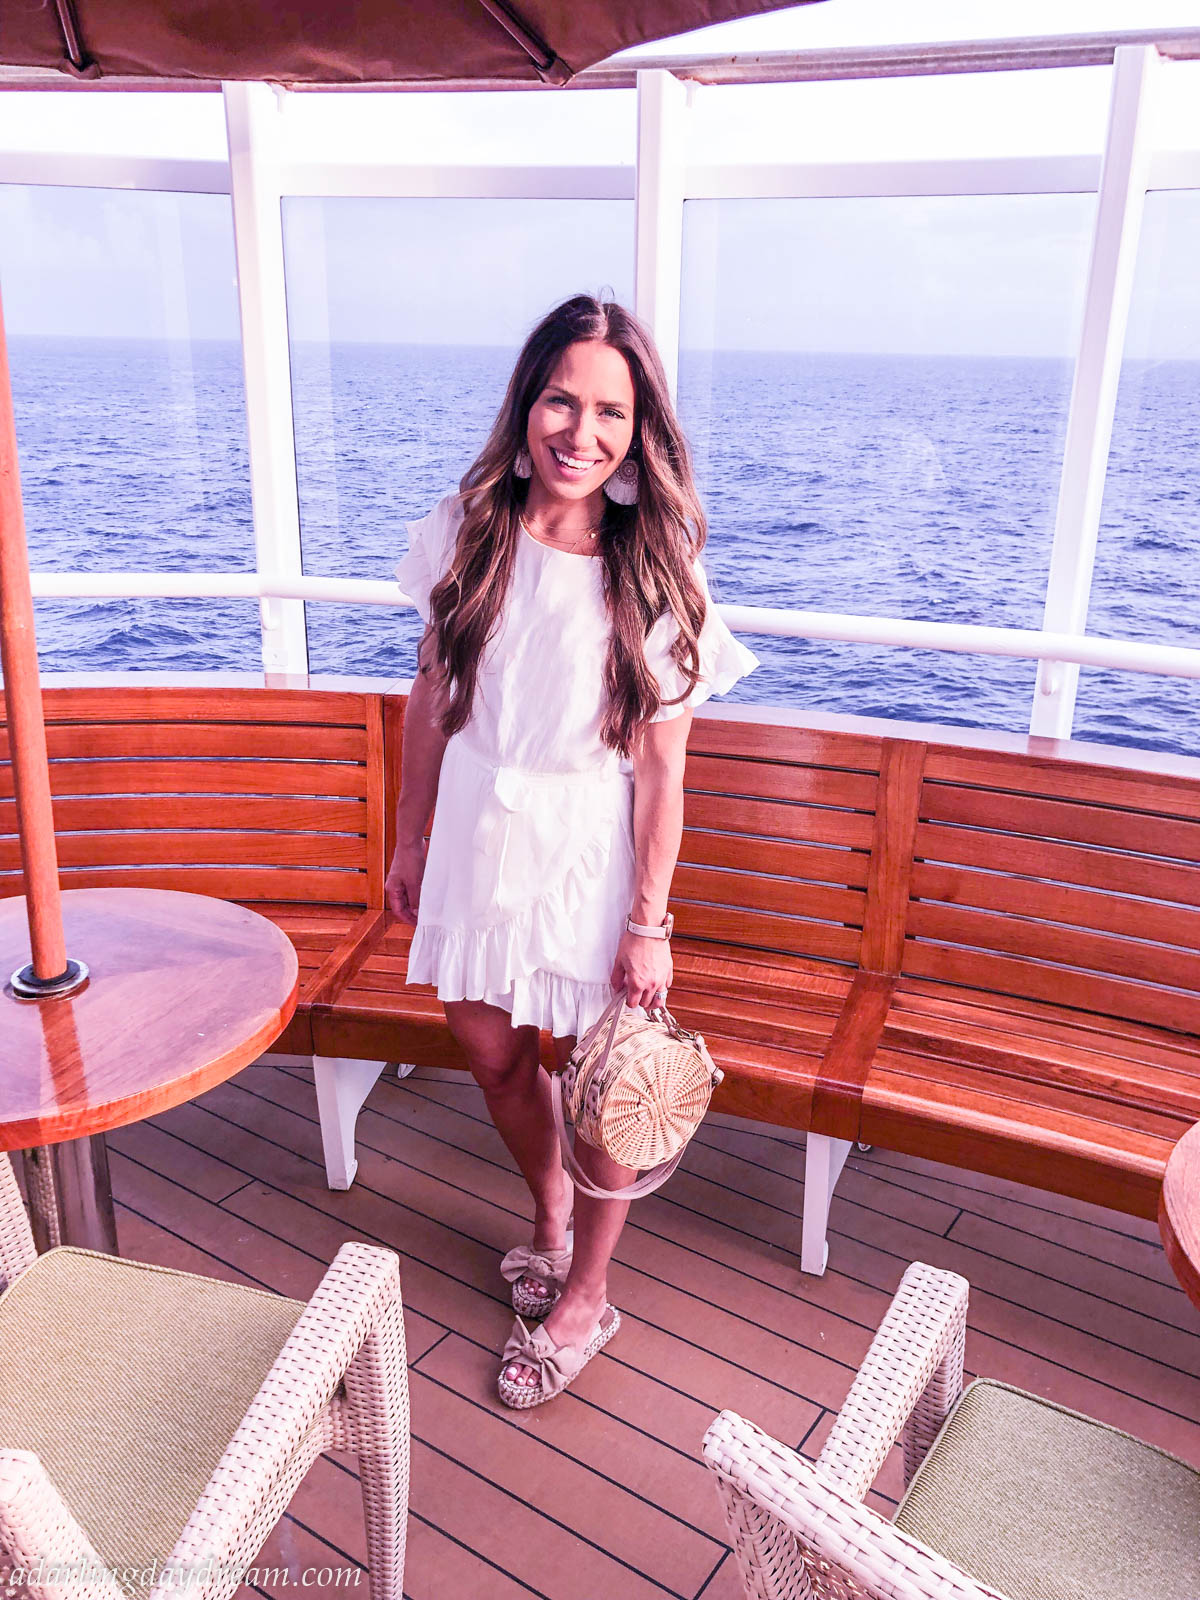 Carnival-Cruise-Travel-Blog-Post-7